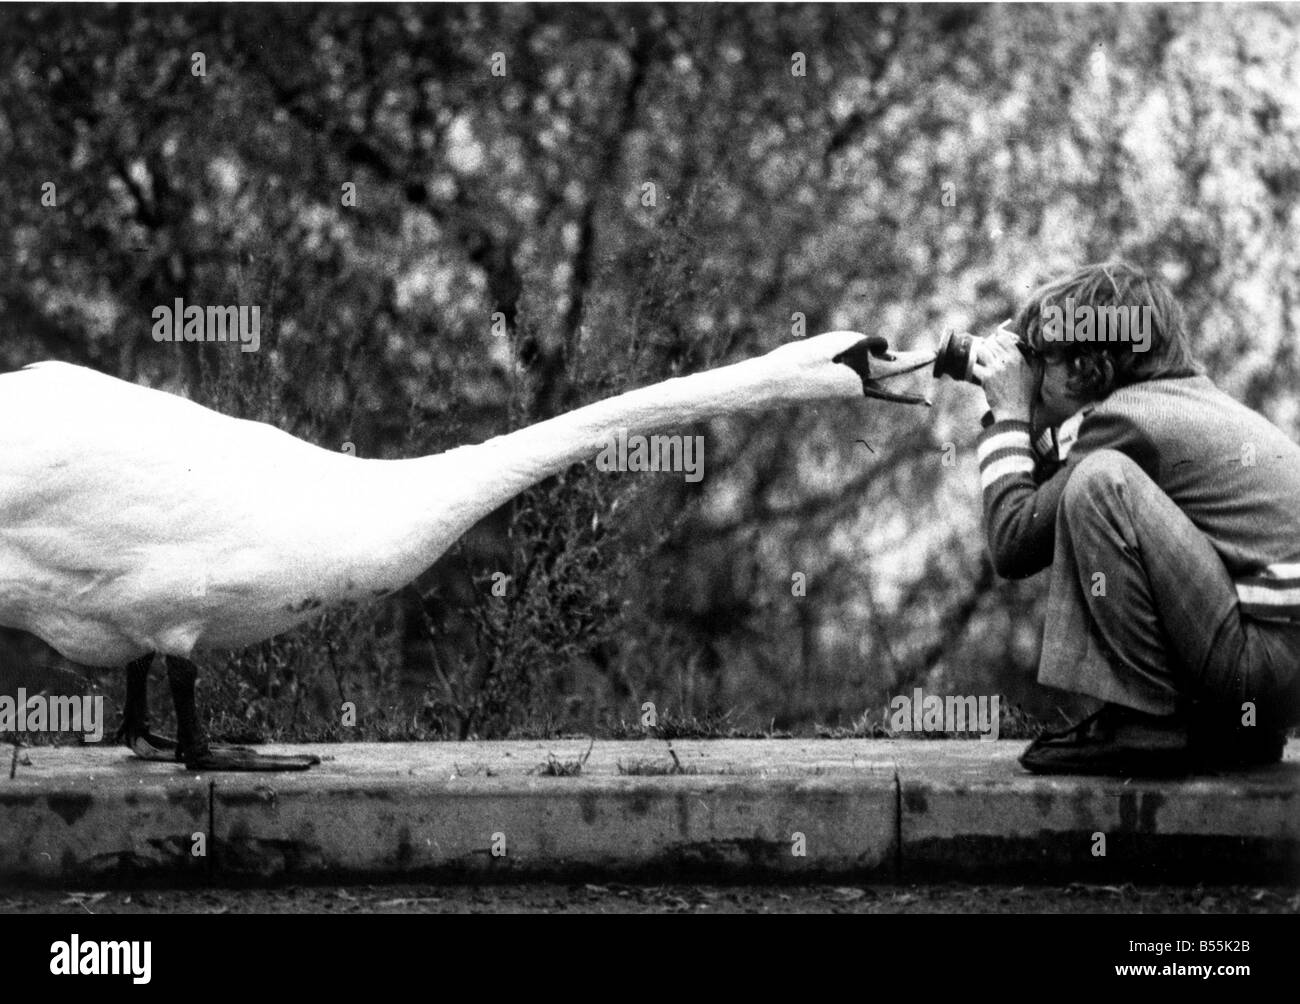 Up beck and personal or Watch the birdie.;David Varley seen here taking a picture of a swn who objected to his image - Stock Image